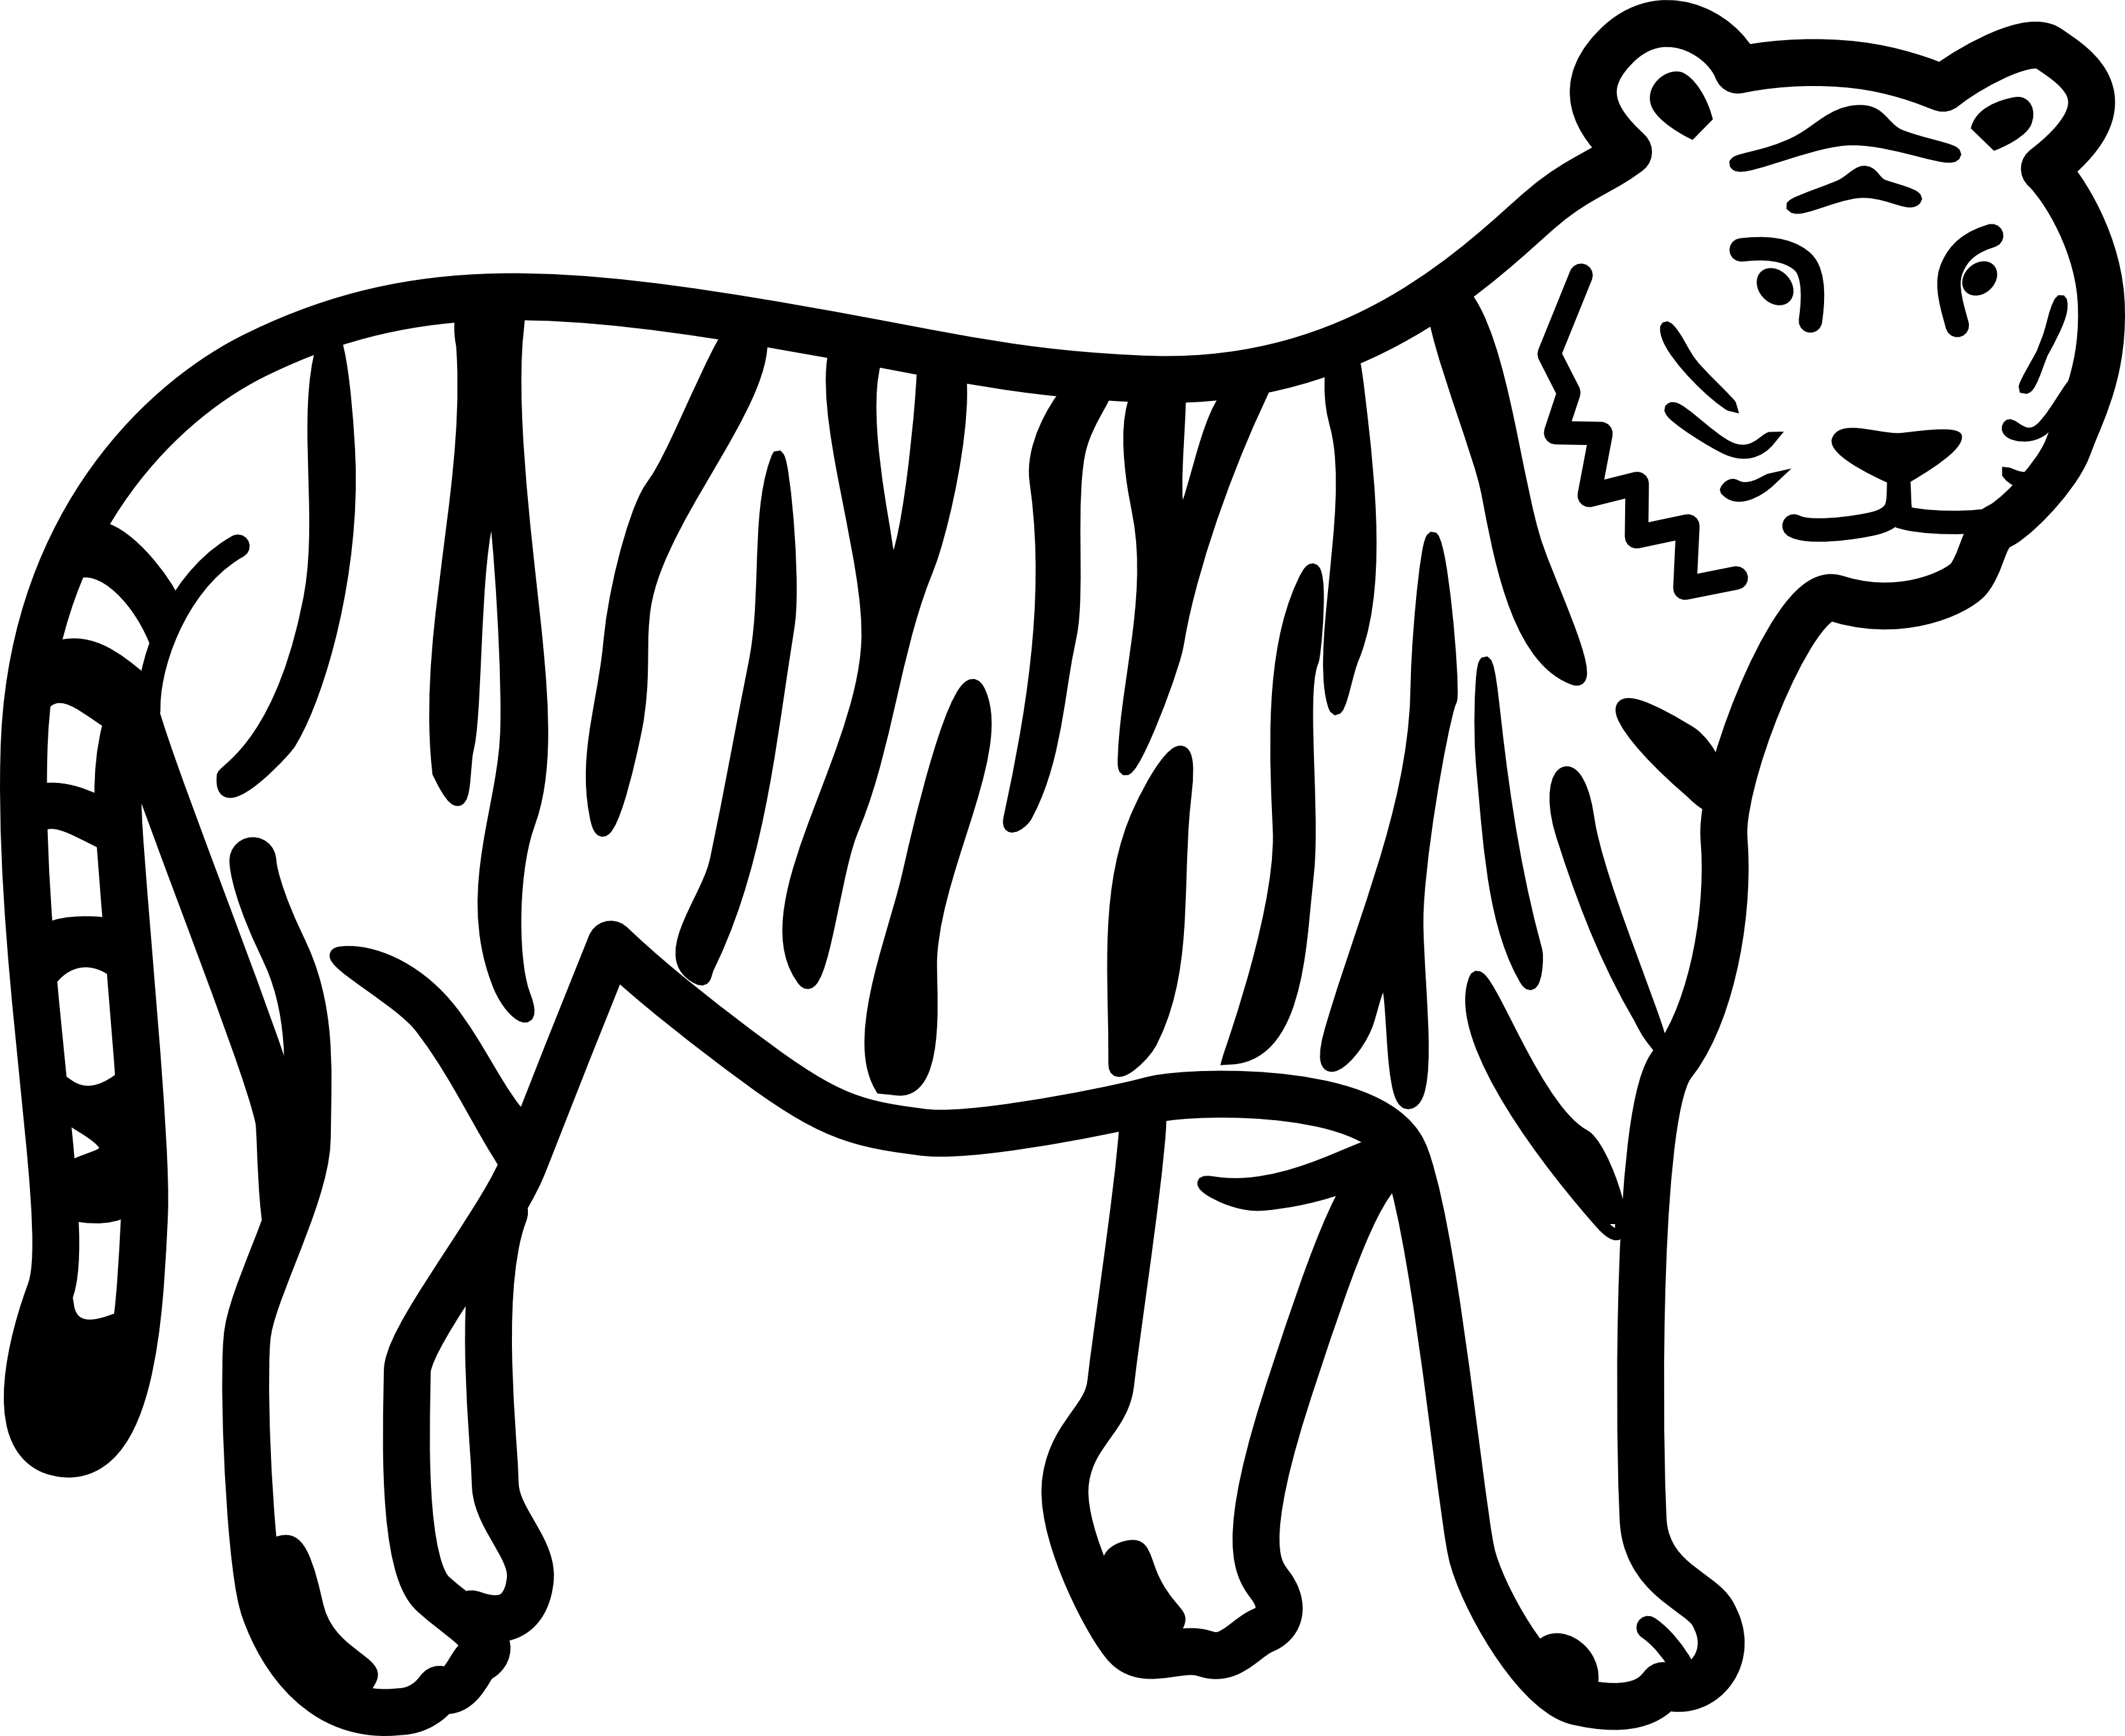 Free Black And White Animal Clipart Download Free Clip